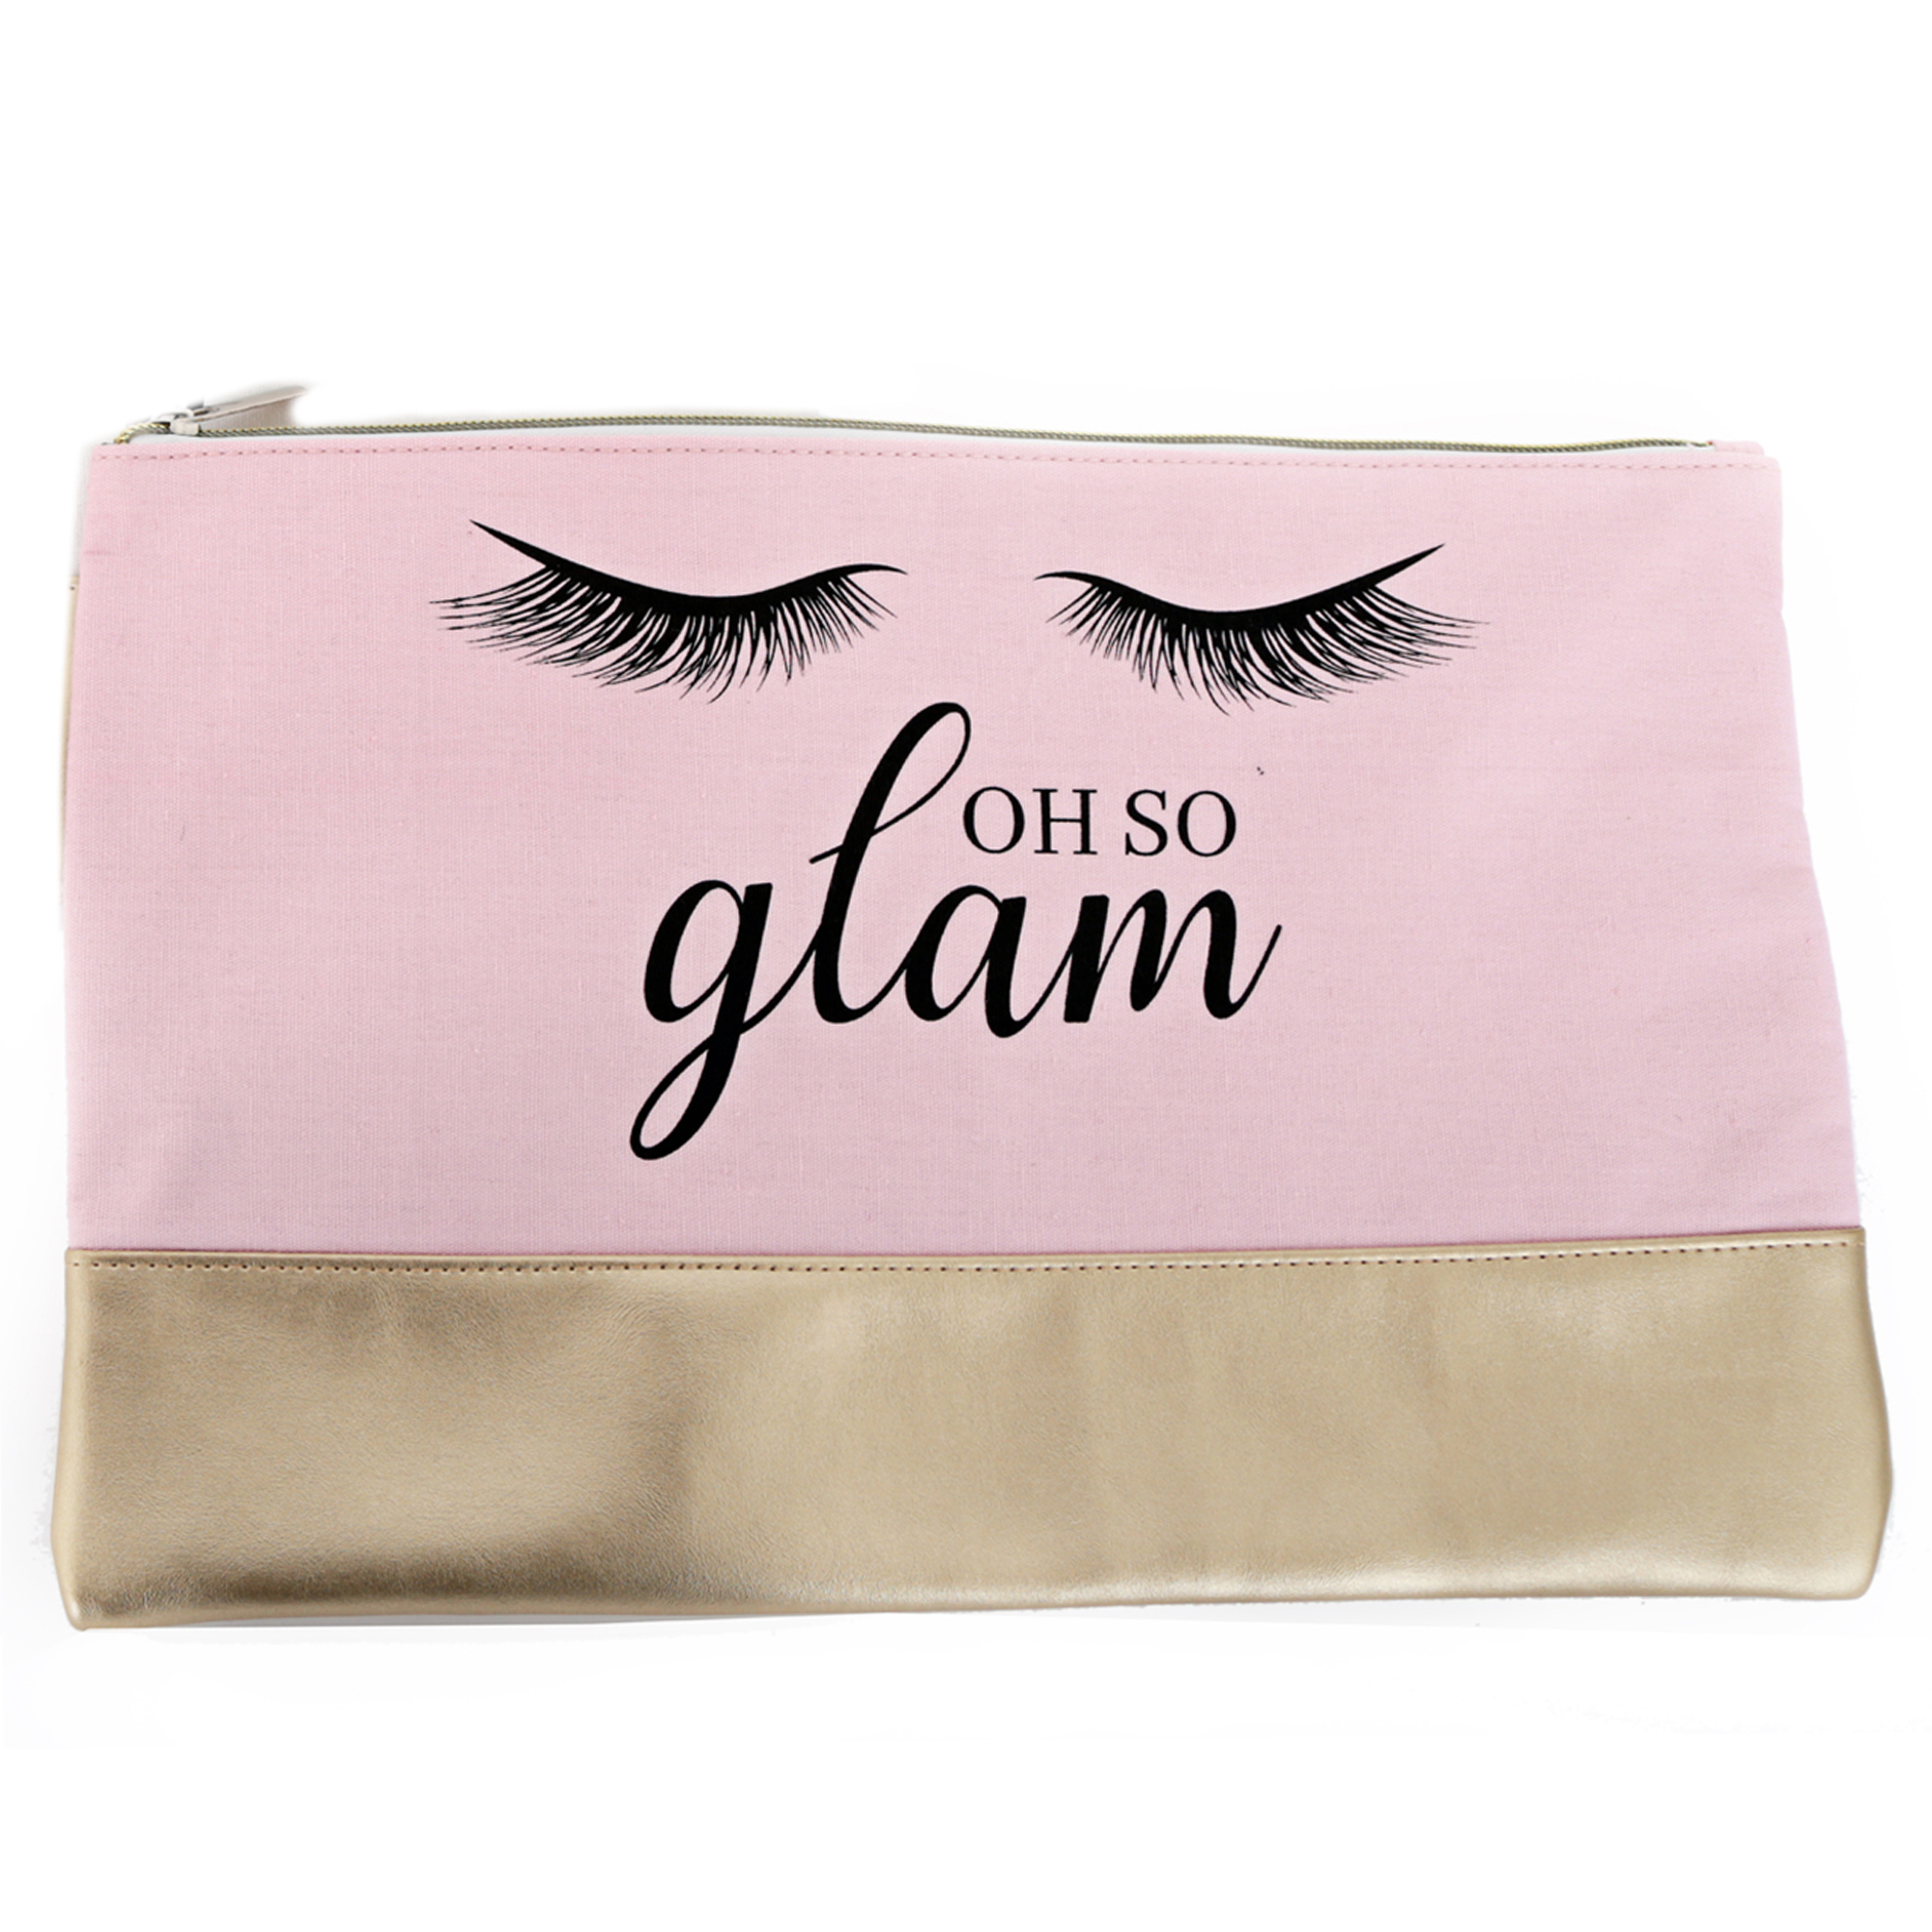 Trousse de toilette \'Diva - Yeux Endormis\' rose (Oh so glam) - 36x23 cm - [Q9982]